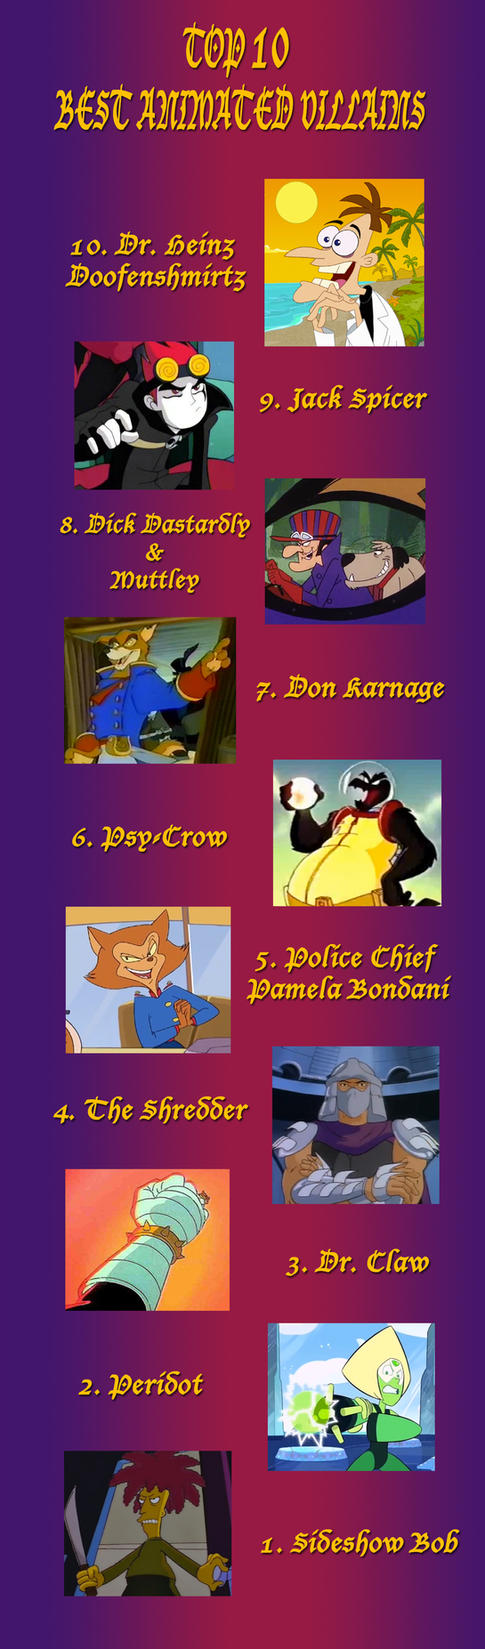 Top 10 Best Animated Villains by BreakoutKid